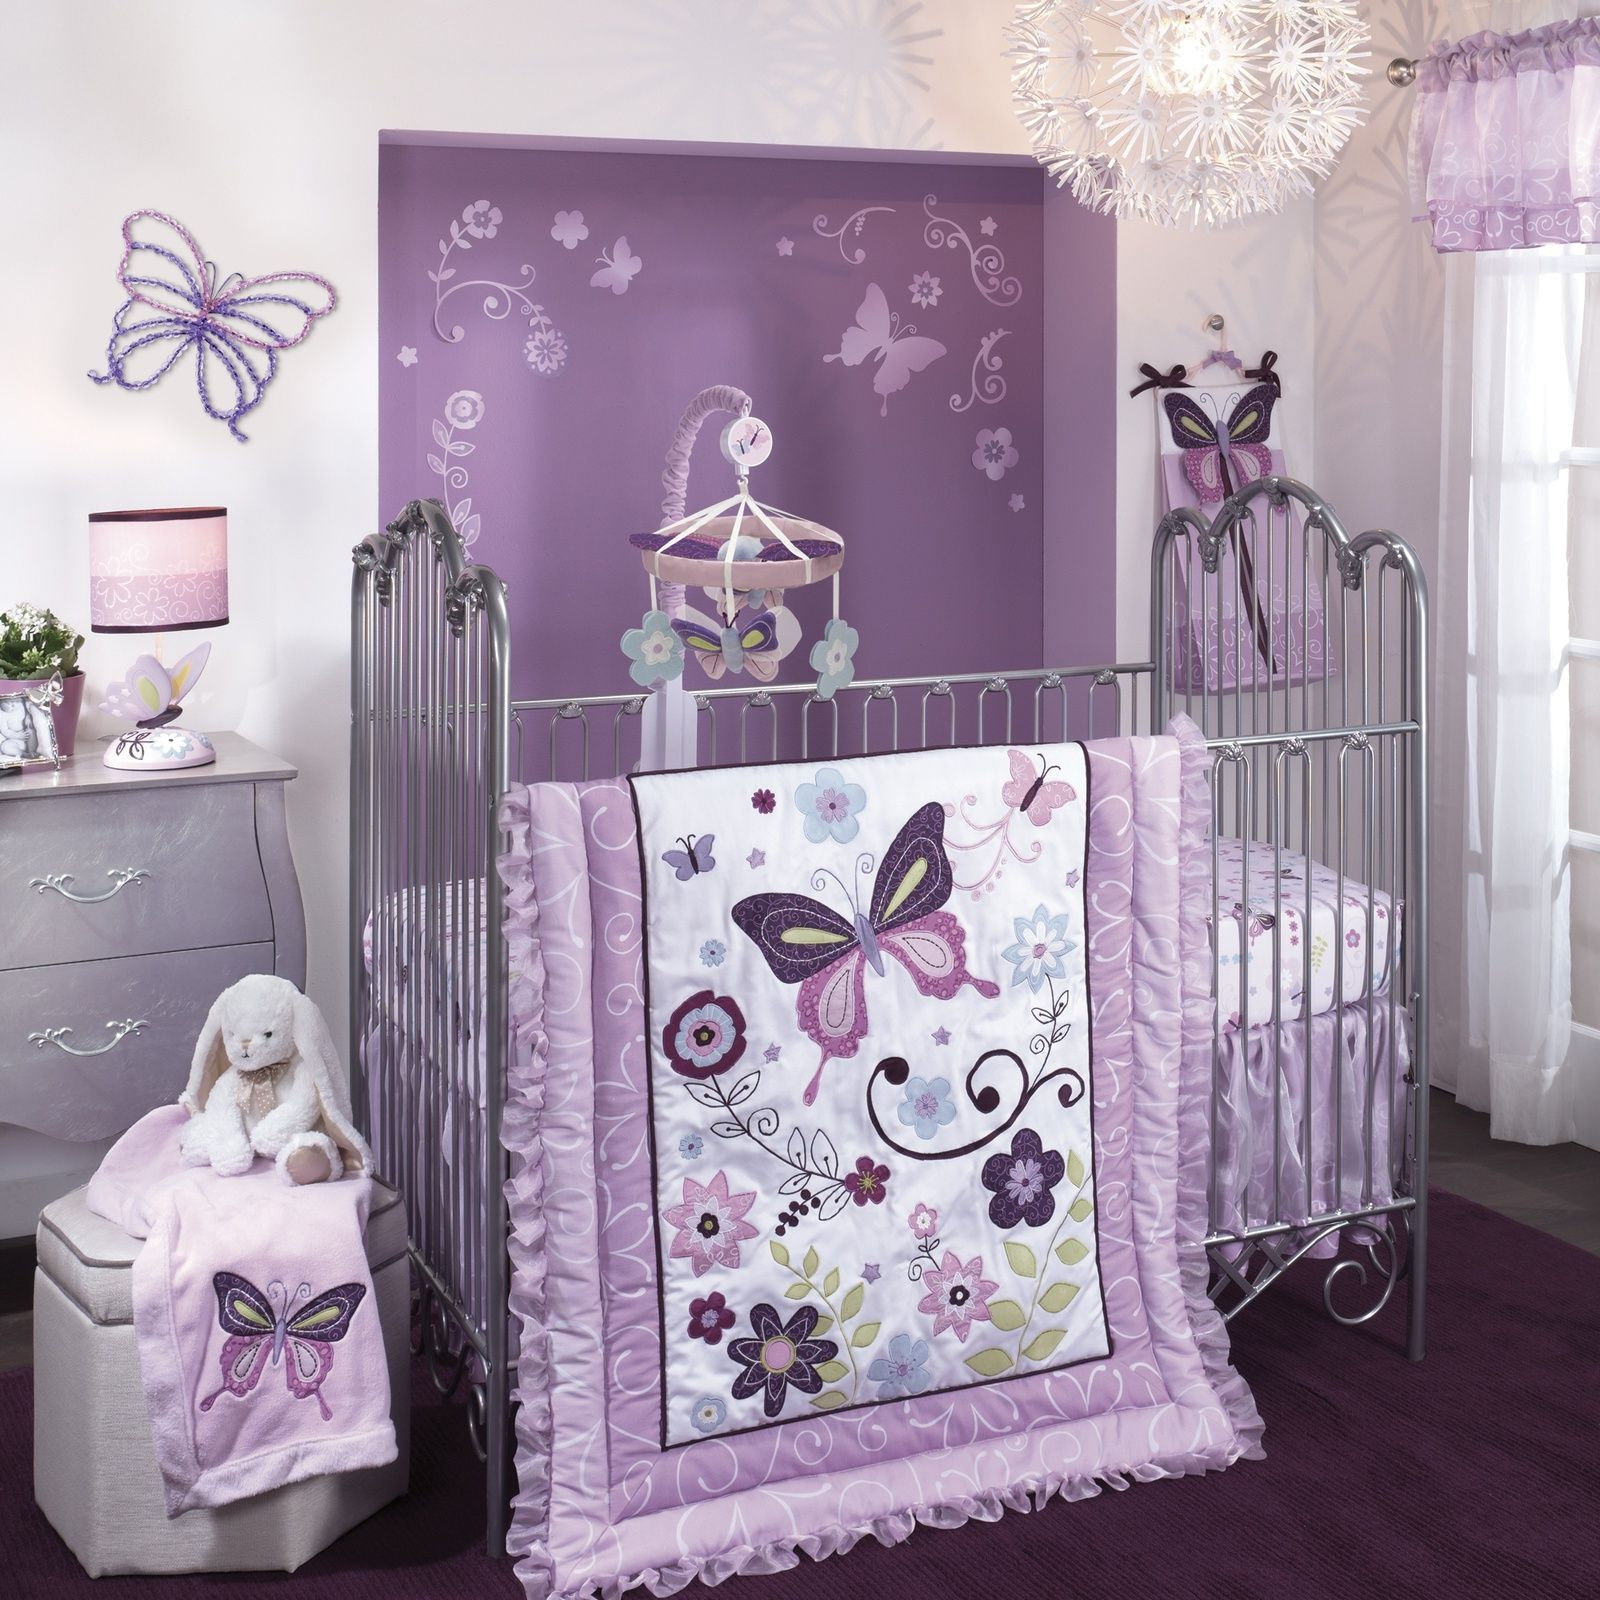 Bedroom cozy purple theme girl nursery ideas lambs and for Nursery theme ideas